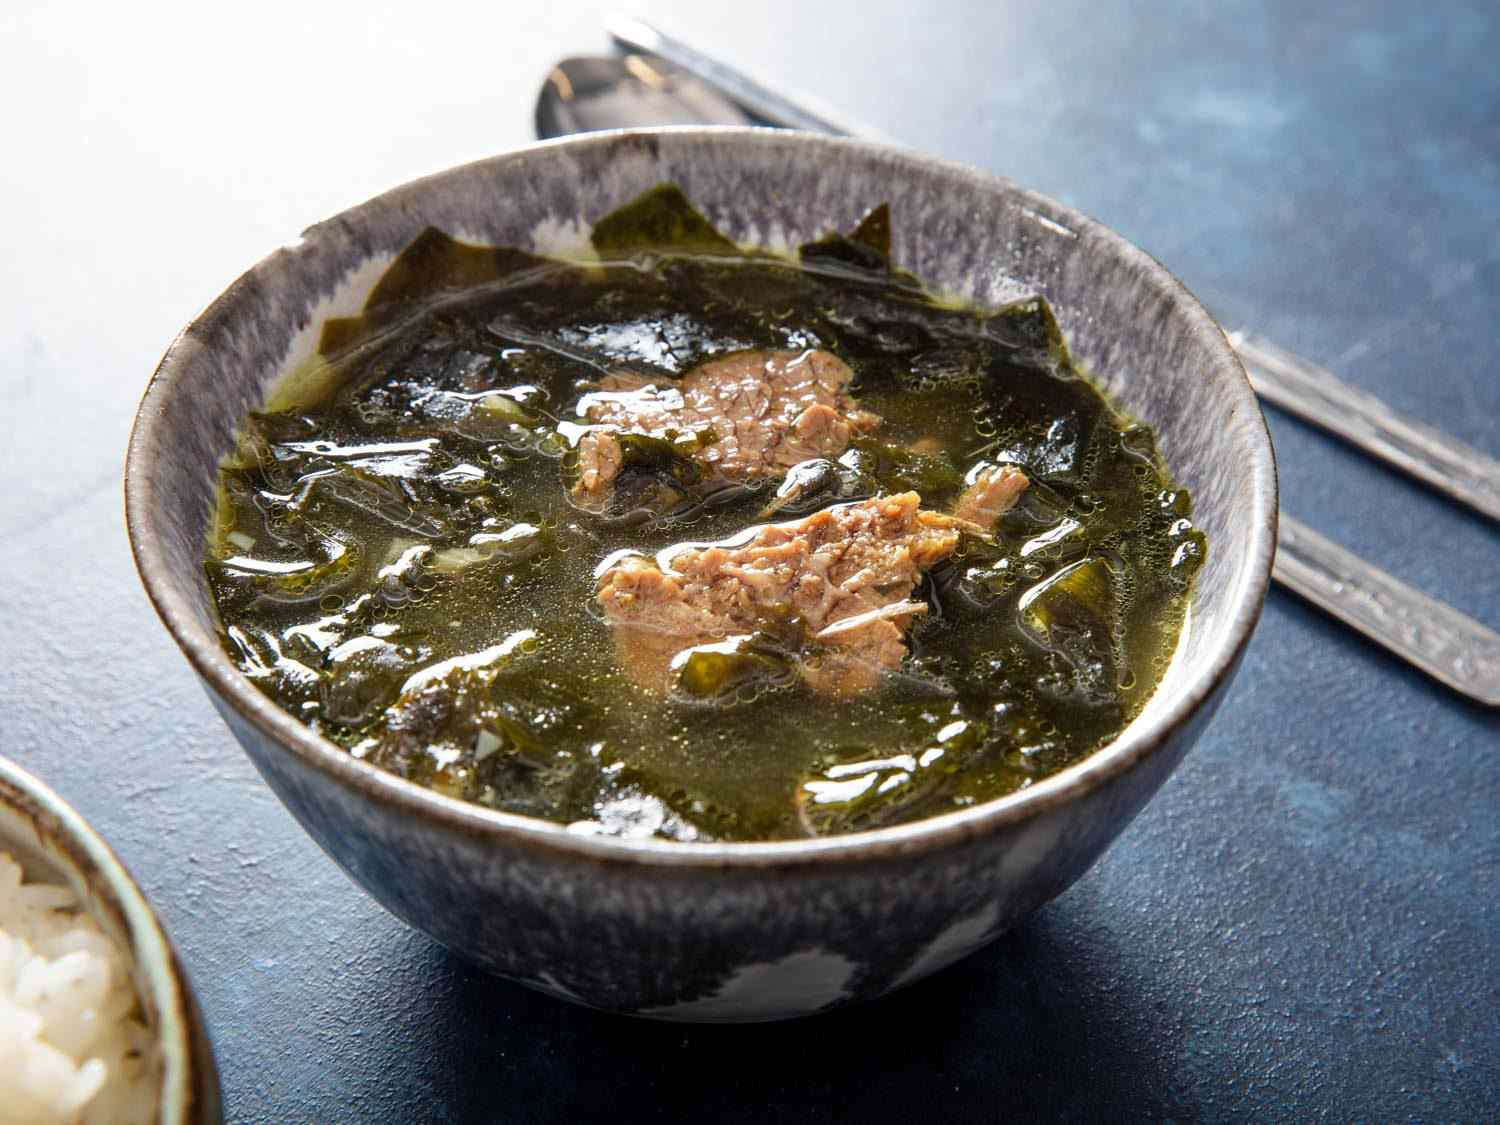 A bowl of Korean seaweed soup (miyeok guk) with pieces of brisket visible in the broth